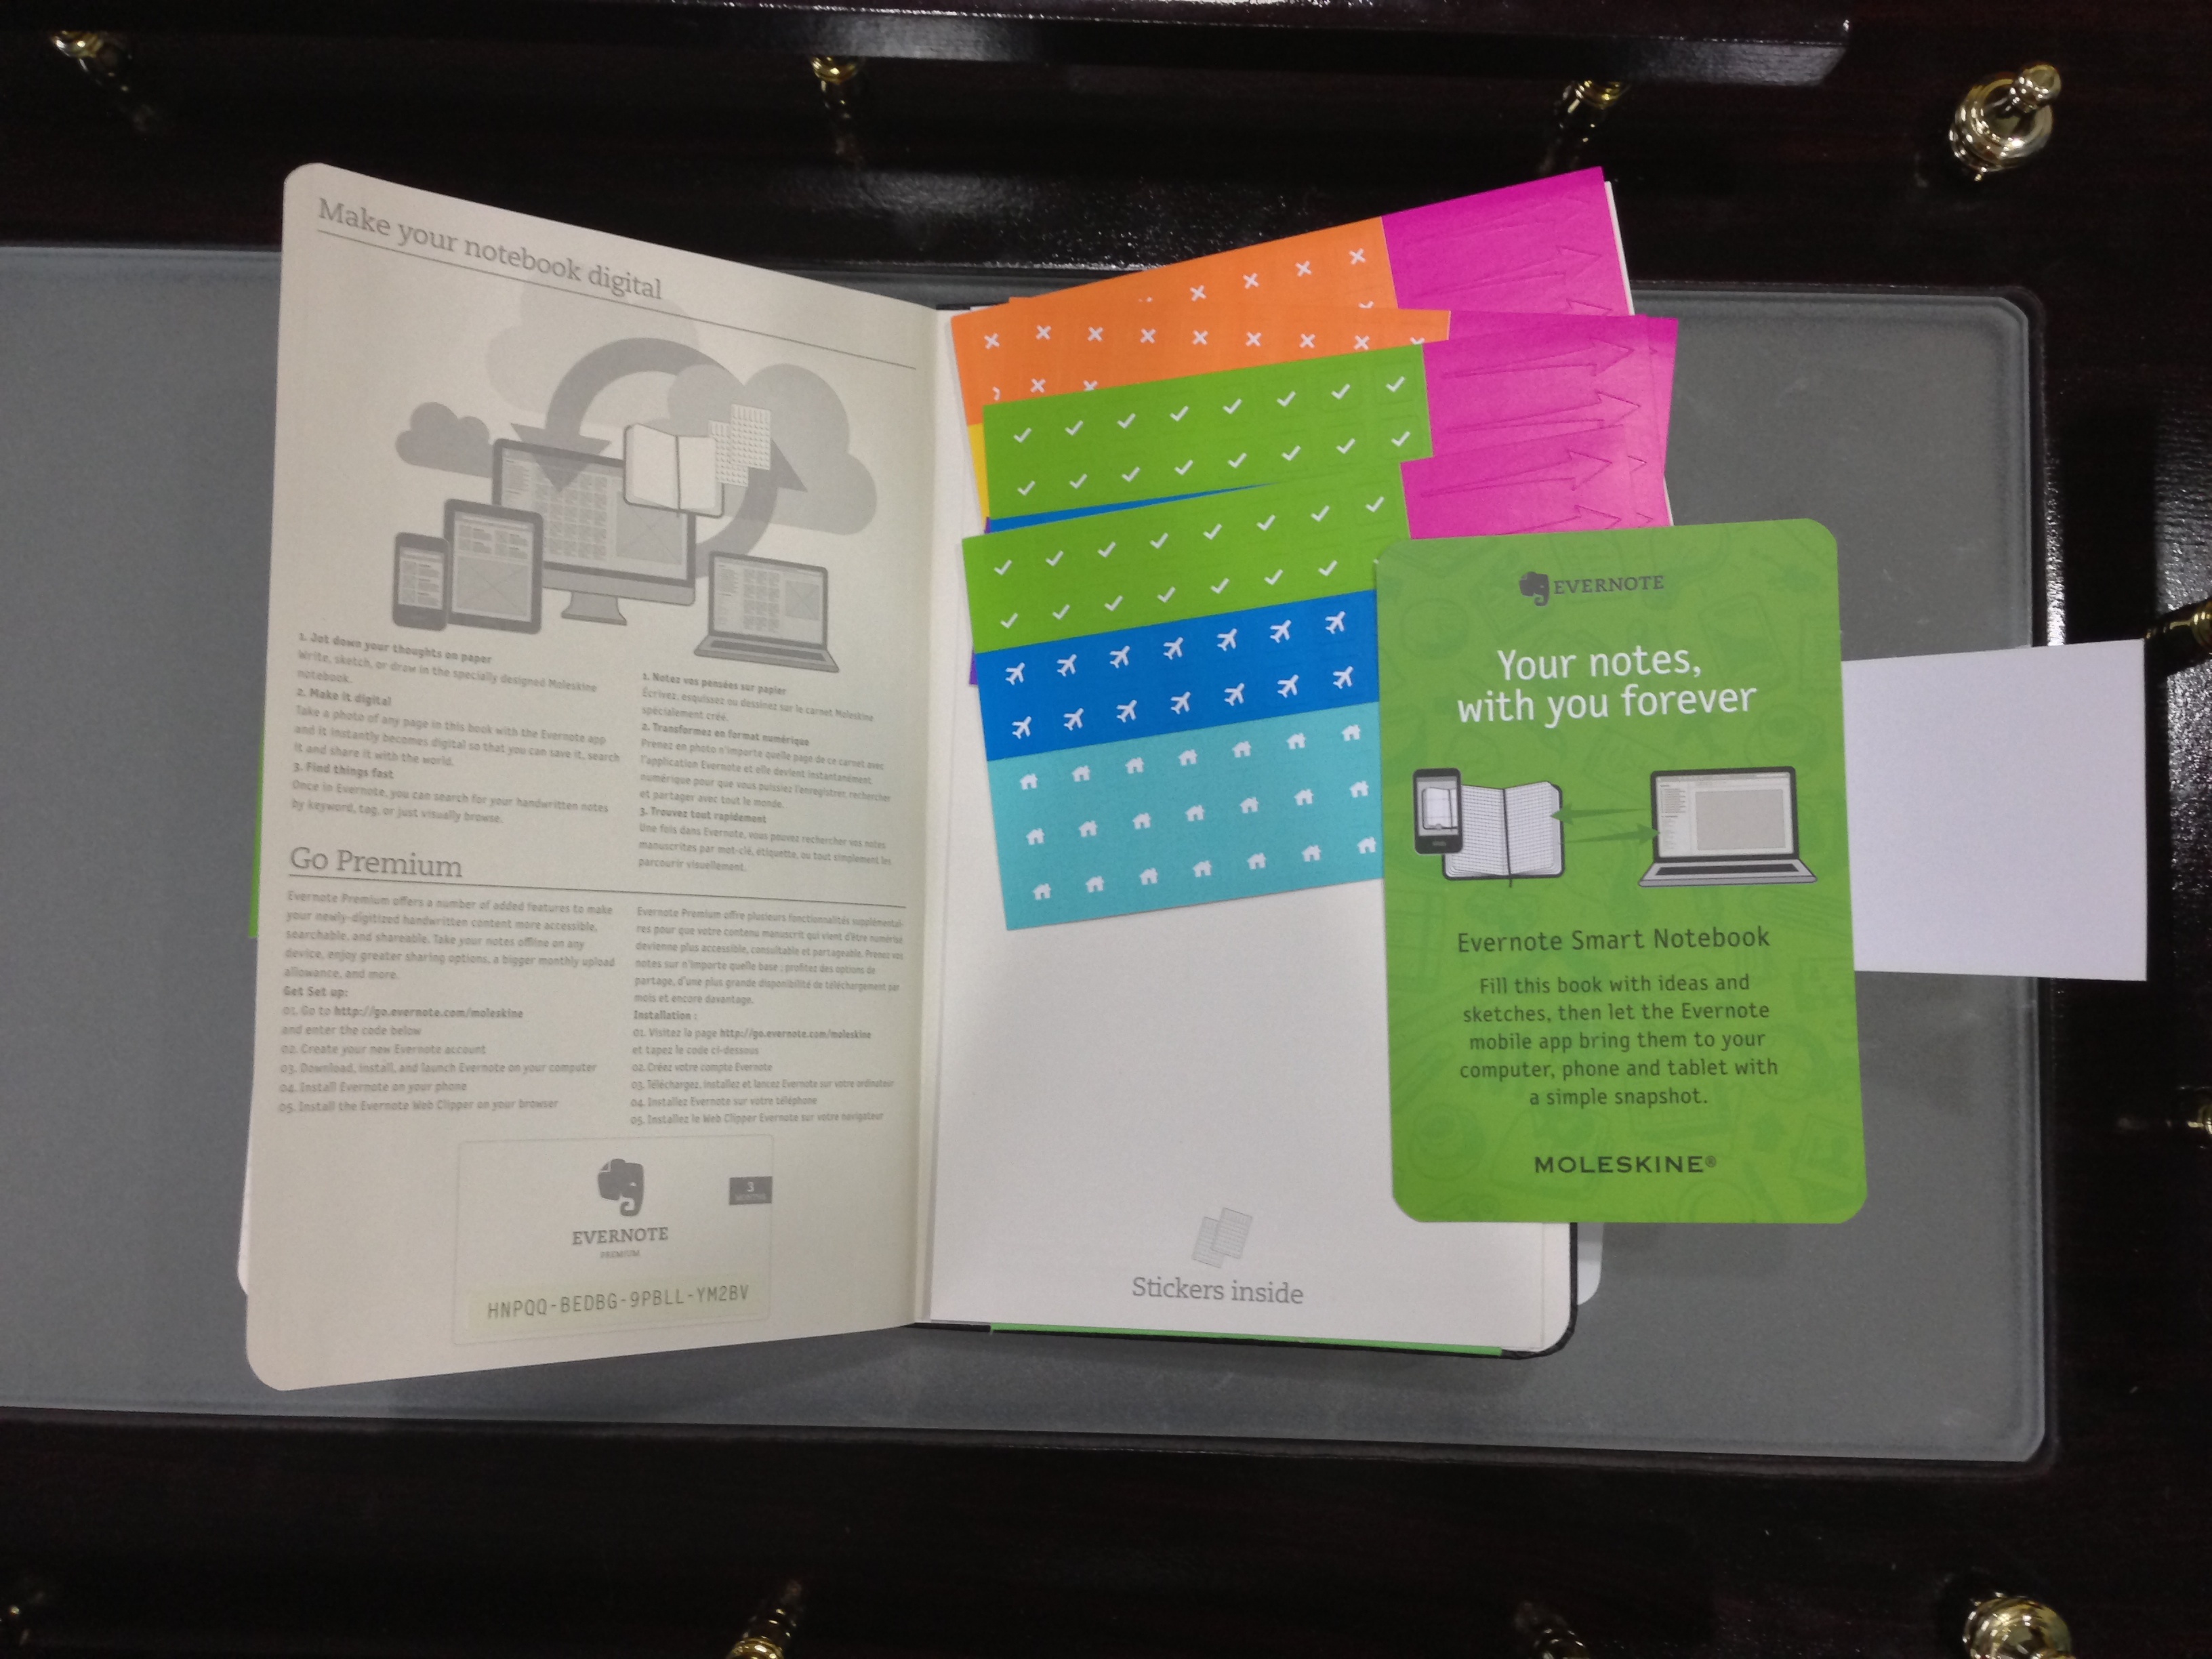 Review Moleskine S 30 Evernote Large Ruled Smart Notebook For Ios And Giveaway 9to5mac